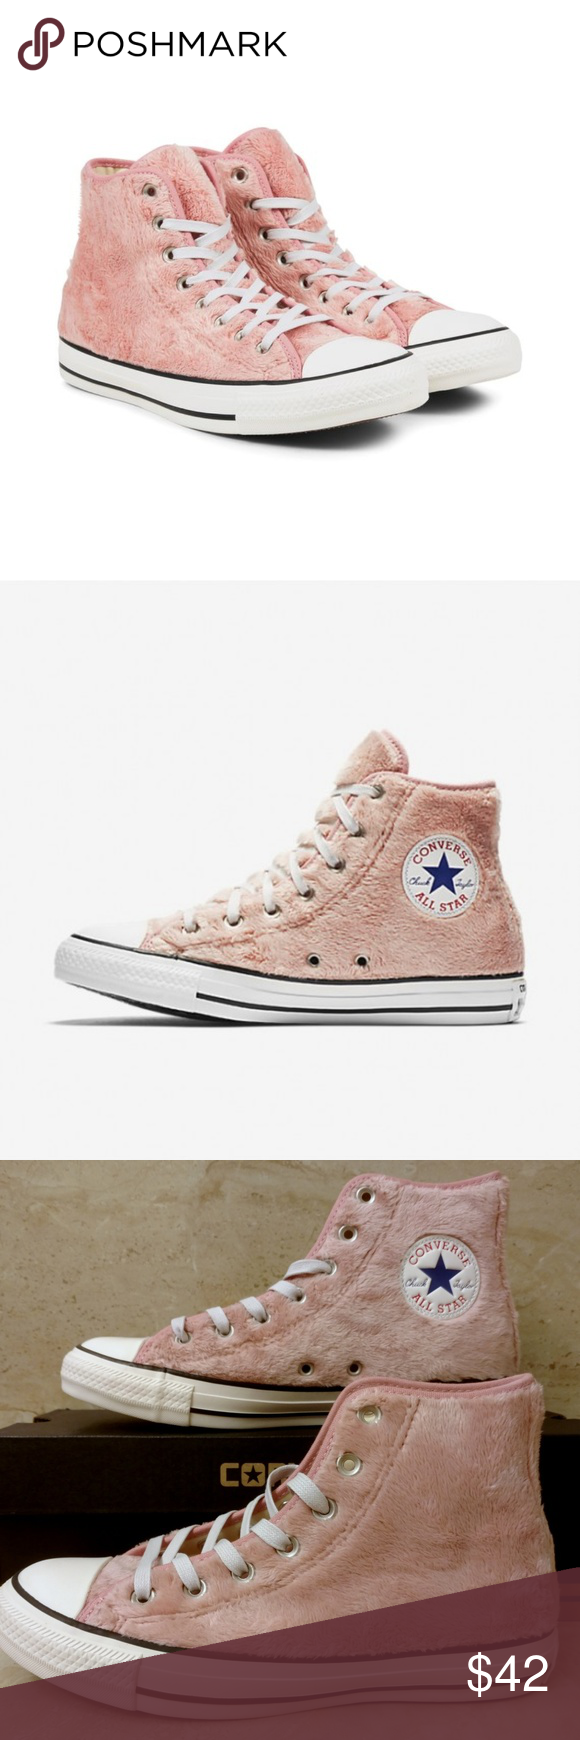 0cee7db82595 Size 7 Fuzzy Rose Converse Hi Top Shoes Pink CTAS Condition  Brand new with  lidless box NWB NIB Size  US Women s 7 Color  Rose Tan